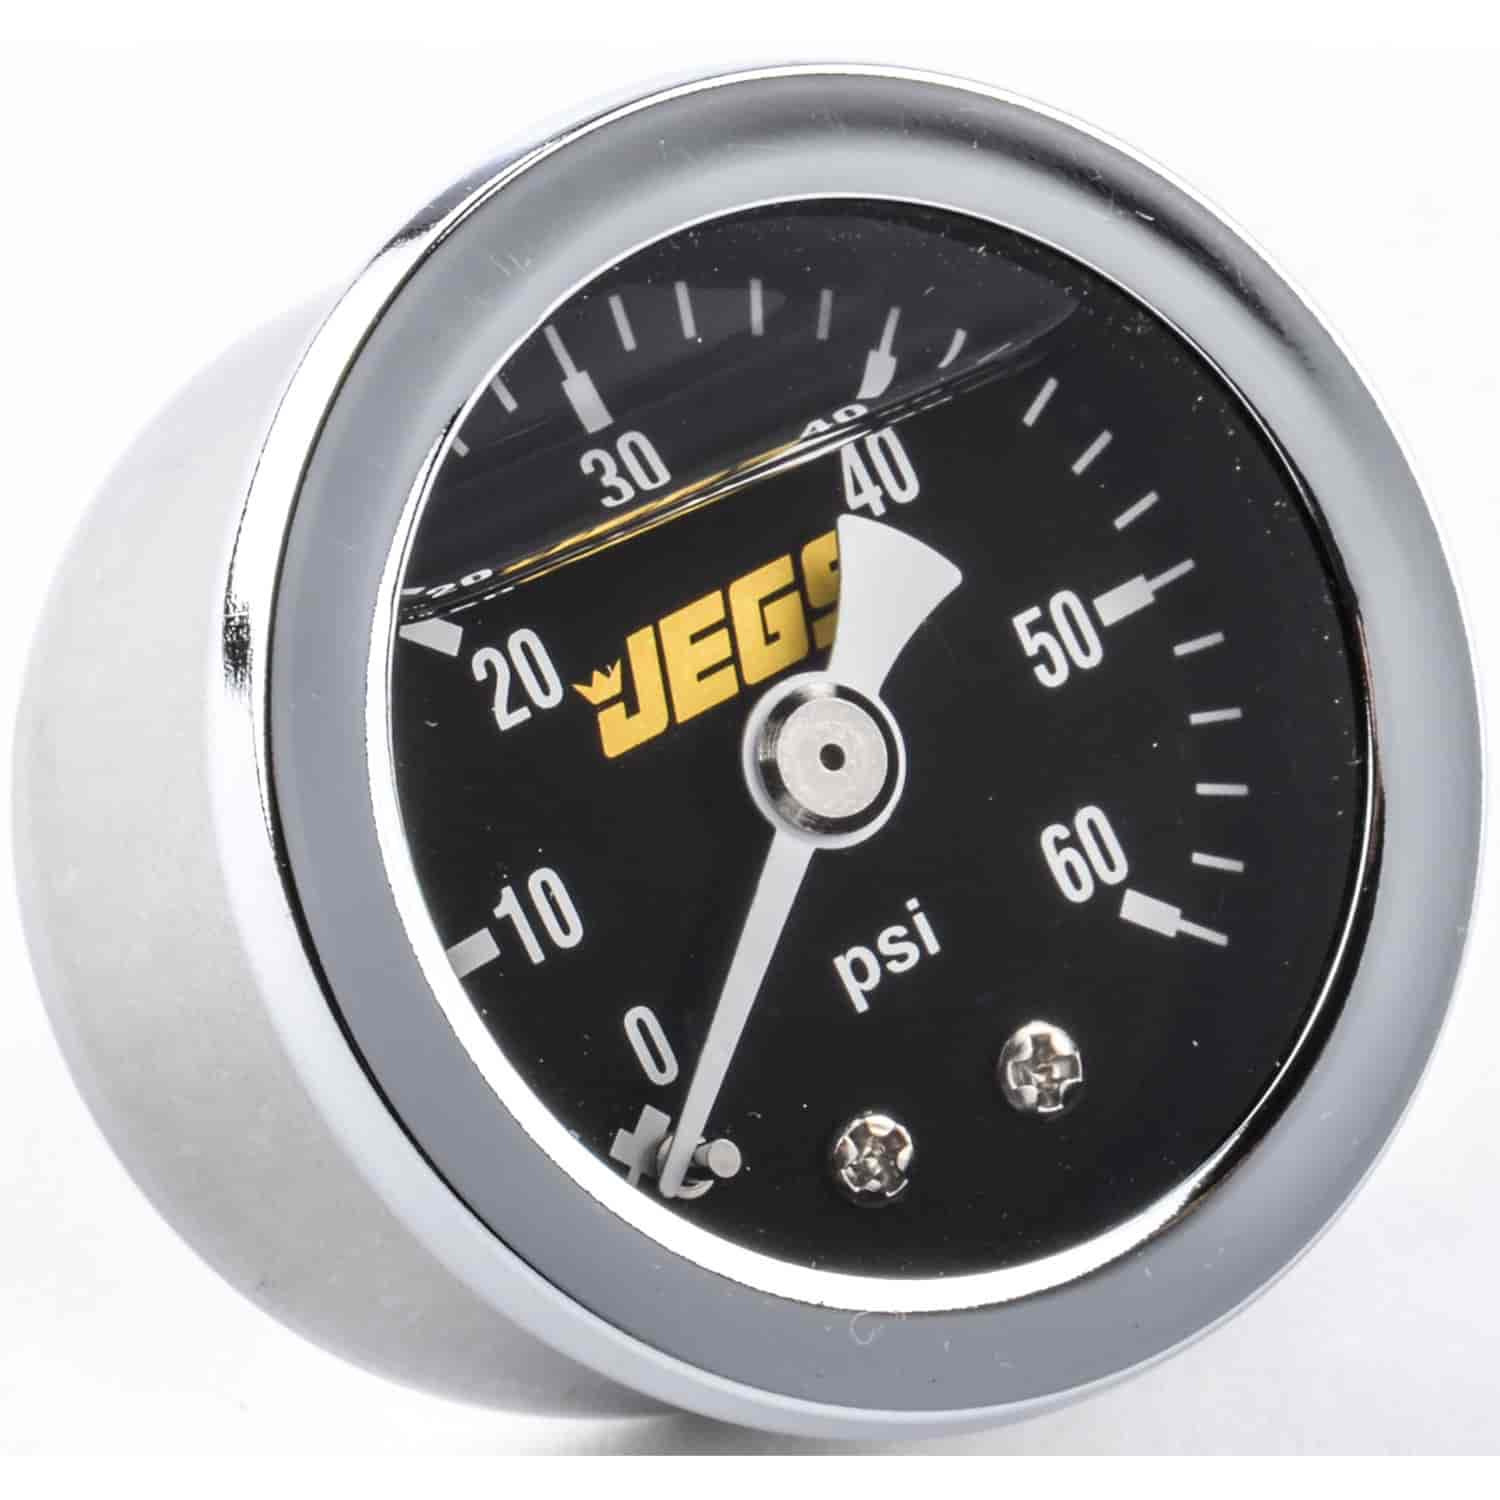 JEGS Performance Products 41012 - JEGS Fuel Pressure Gauges